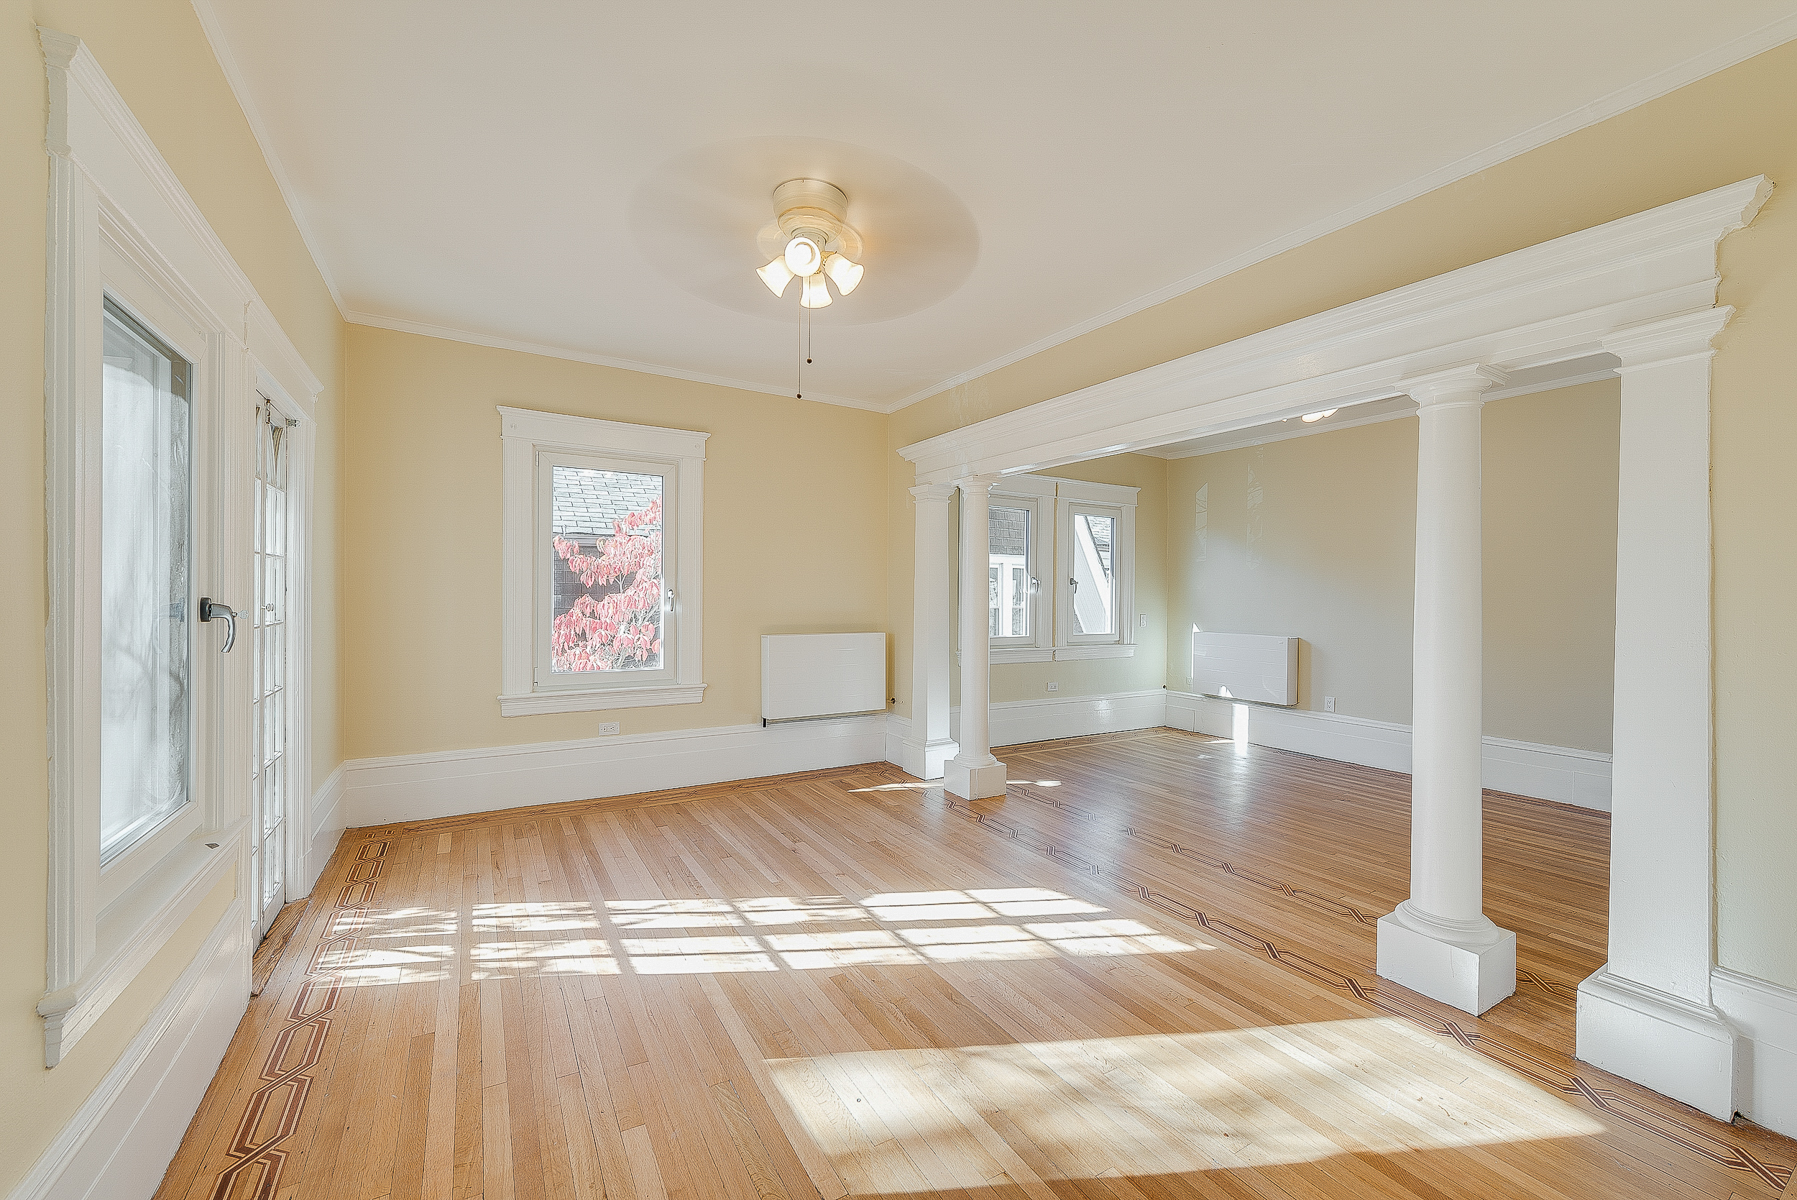 Multi-Family Home for Rent at 3 BR Prewar Stunner 409 West 261 Street 2 Riverdale, New York 10471 United States